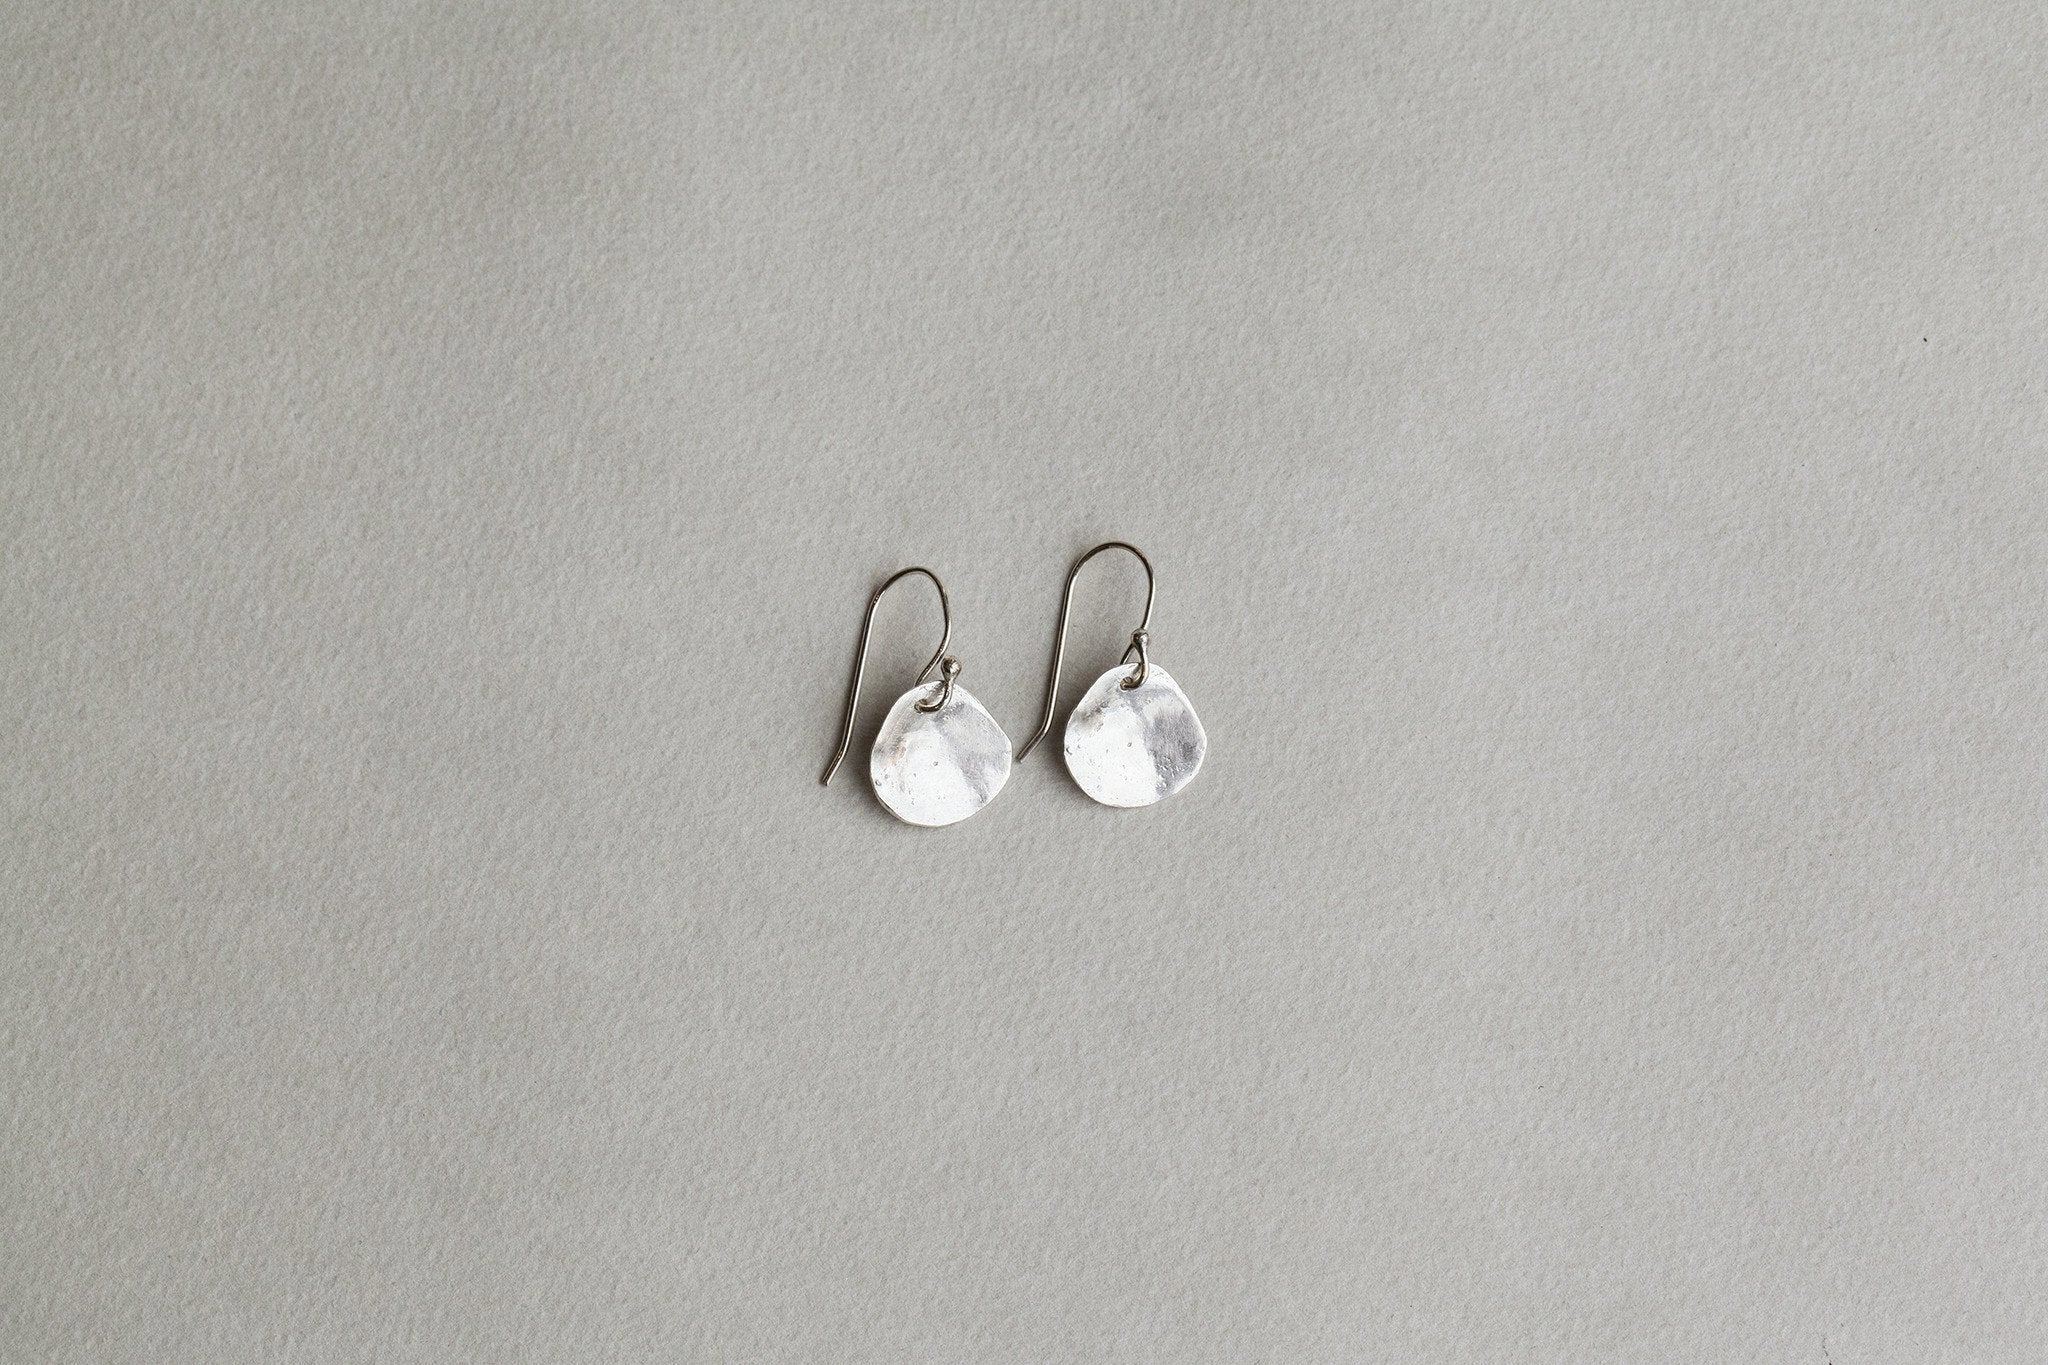 hammered silver disc hook earrings are our bestselling silver earrings also by Karen Hallam